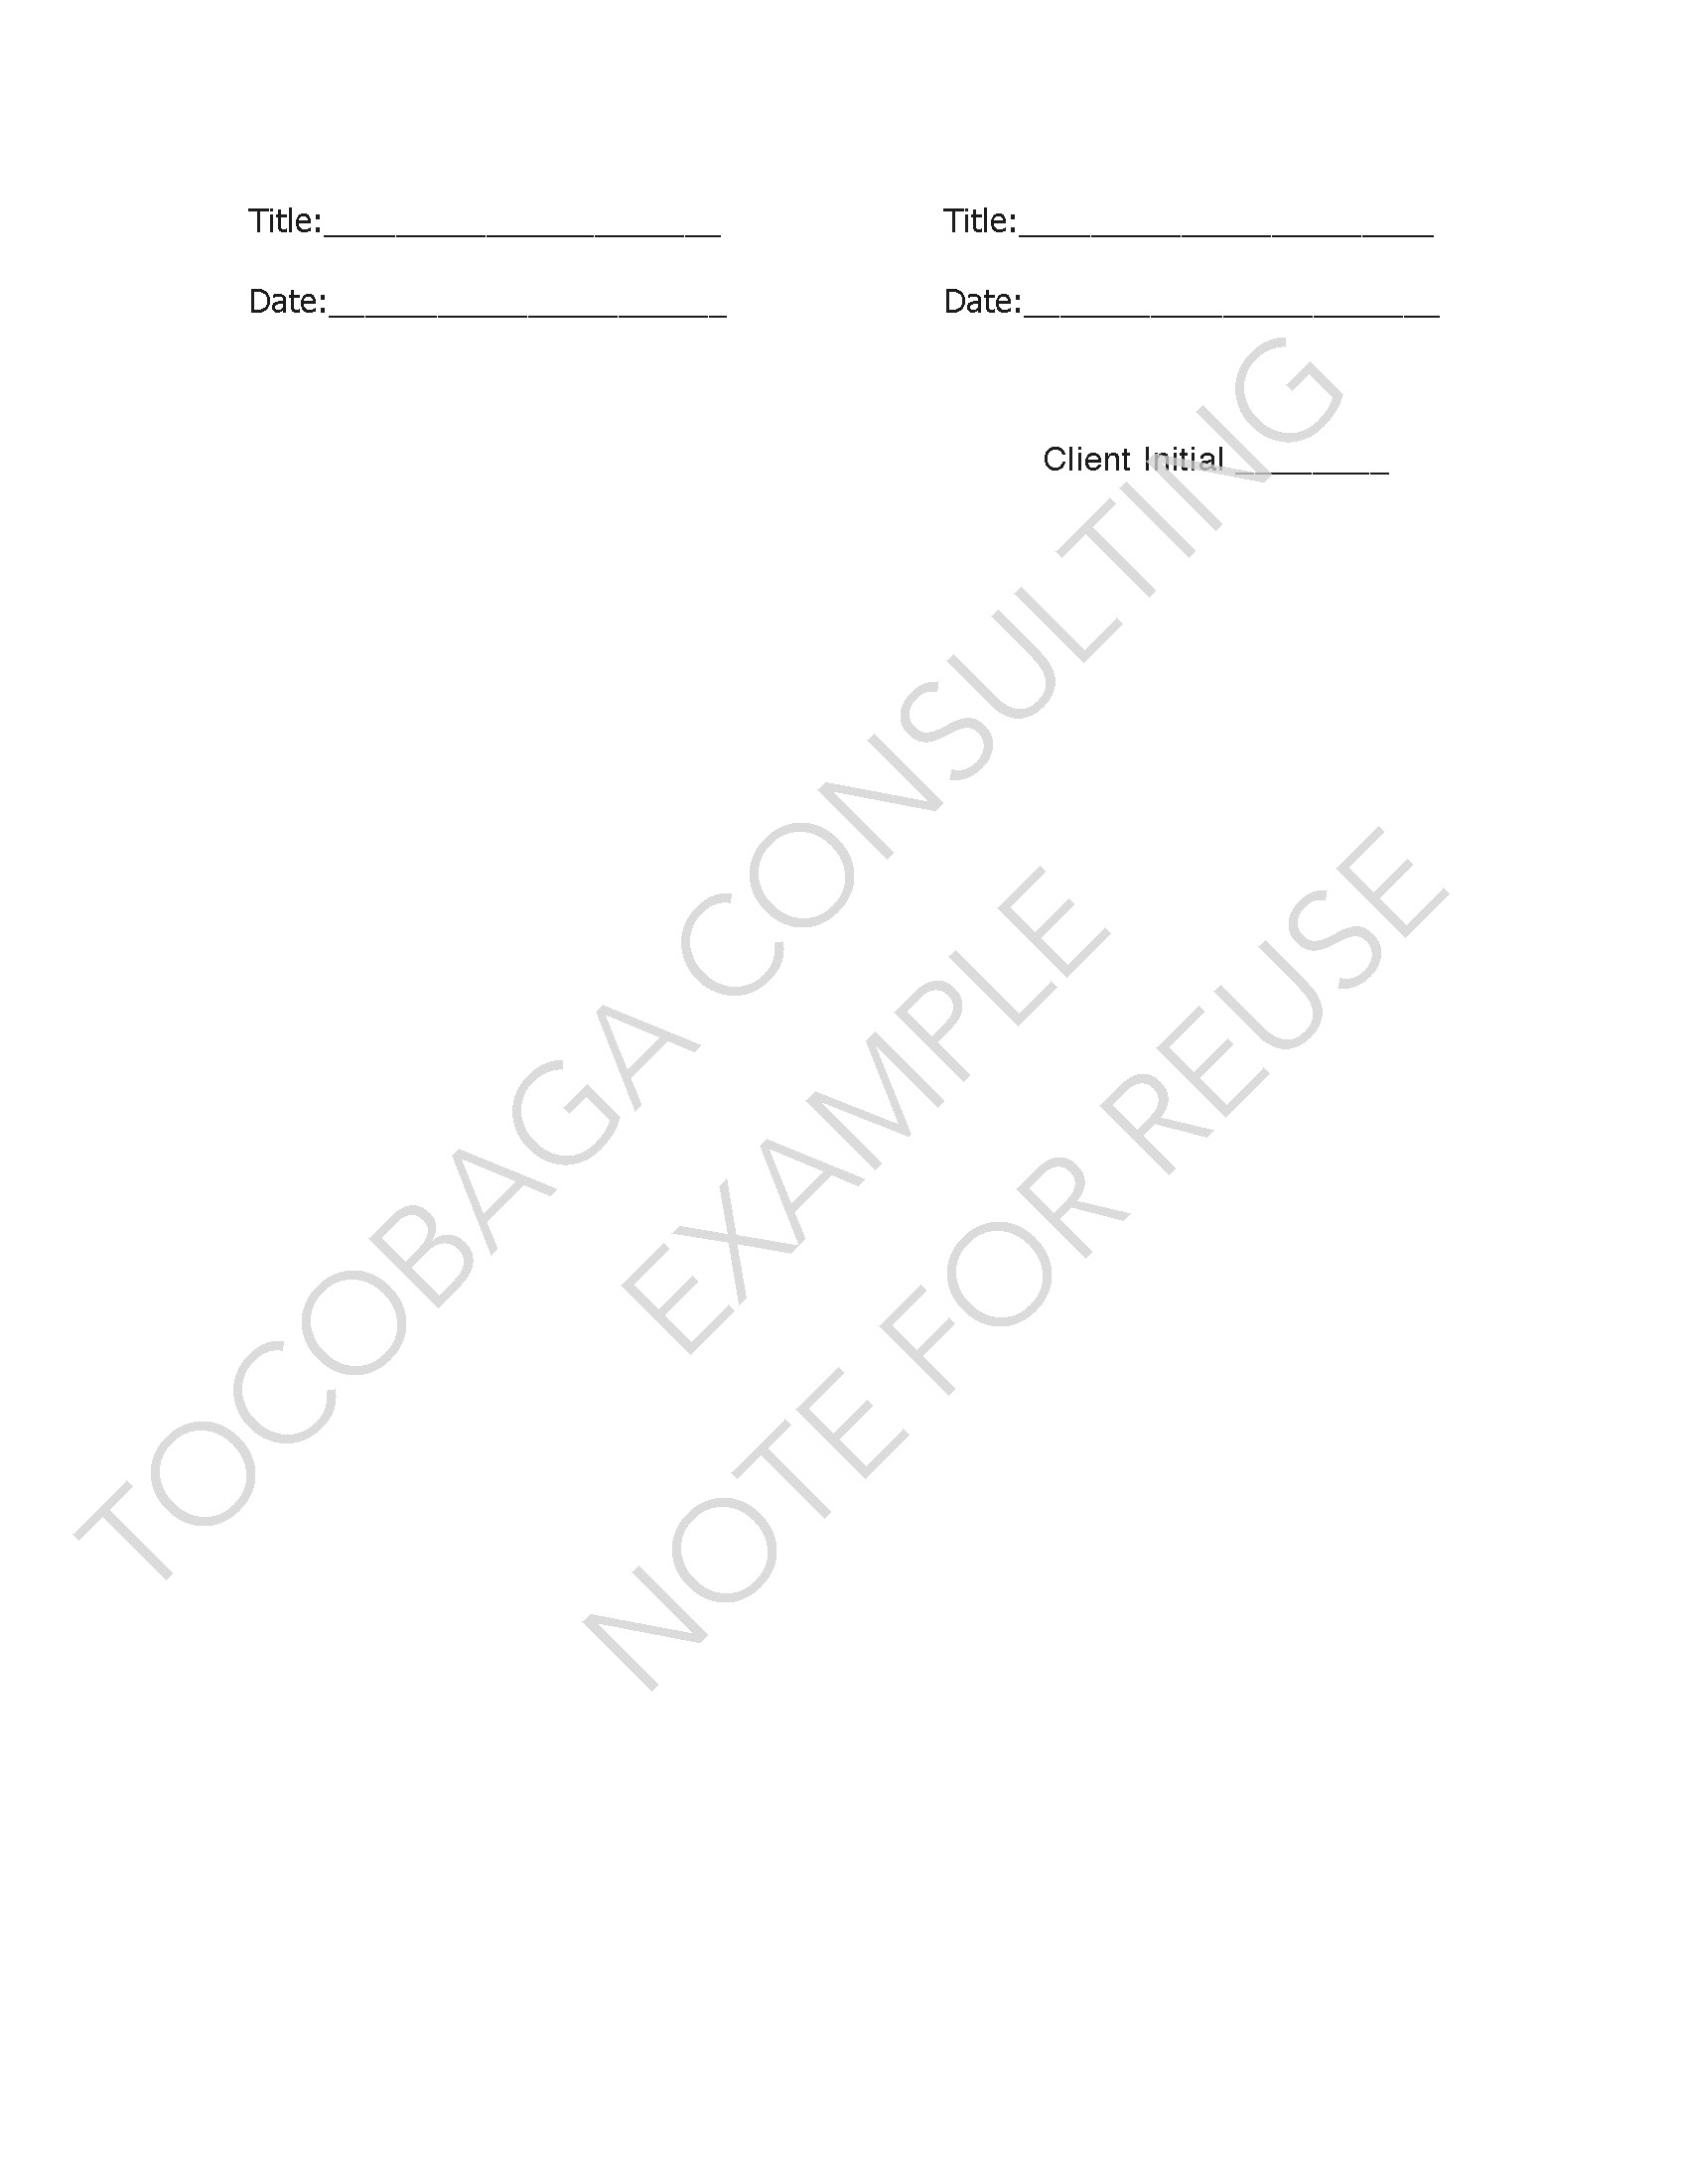 Company Services Agreement EXAMPLE_Page_14.jpg